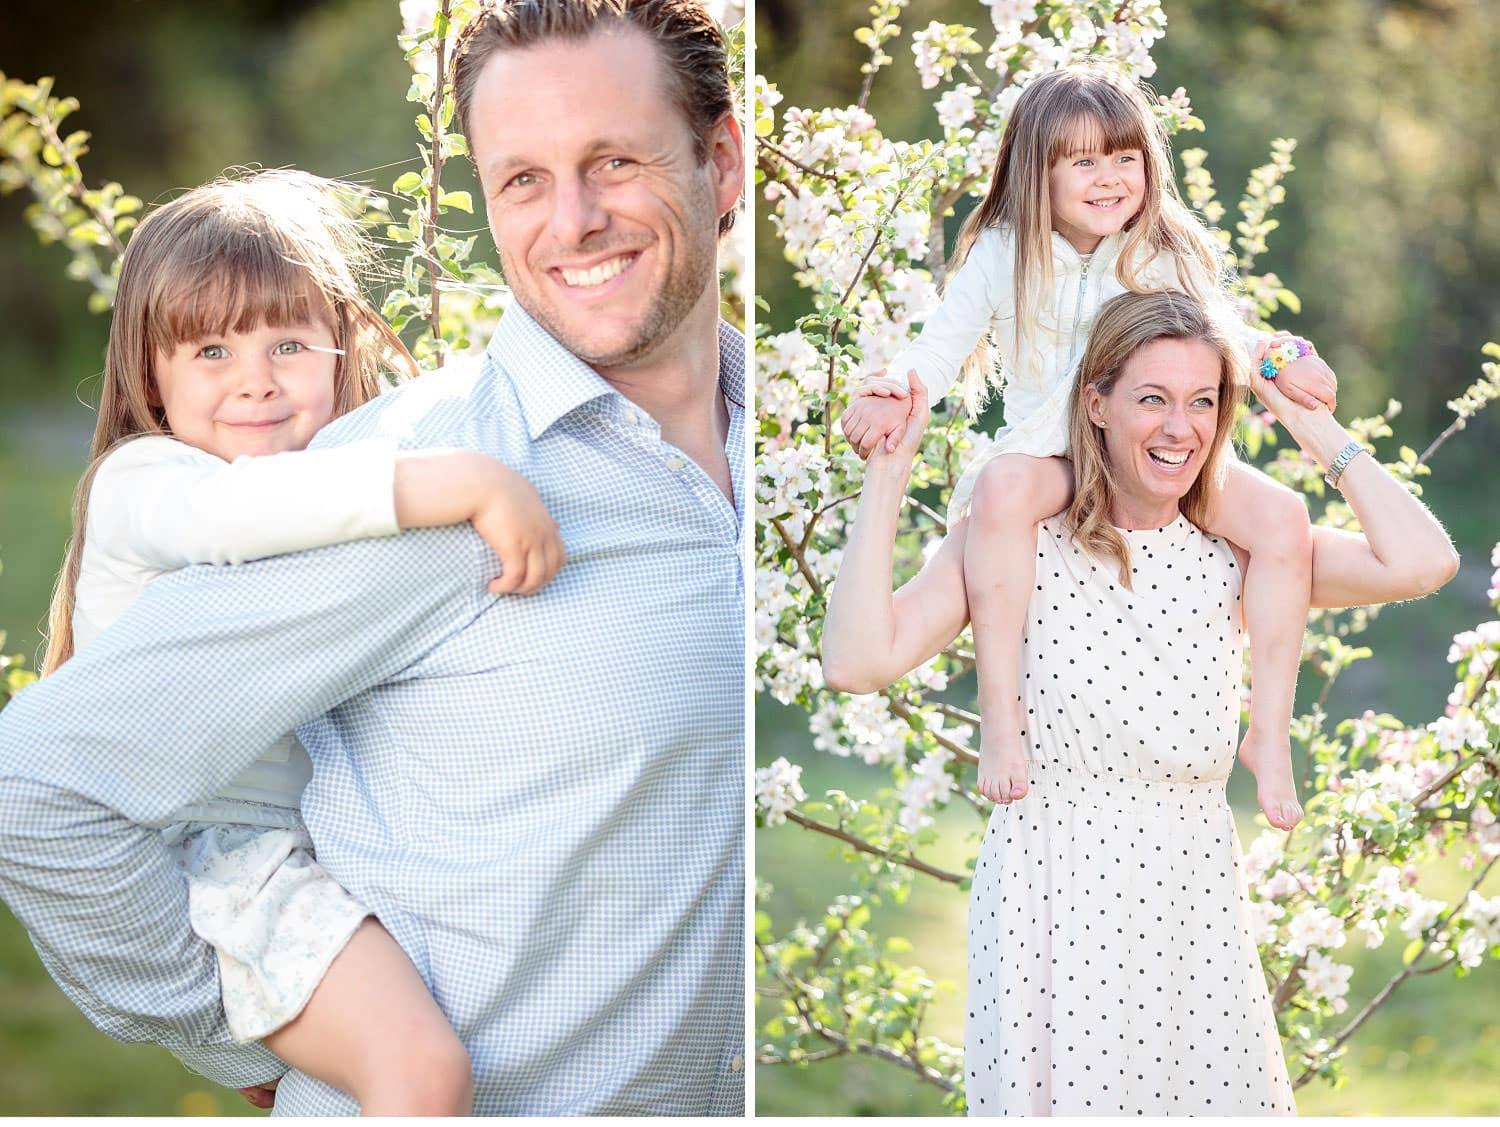 knivtsa stockholm familjefotografering lifestyle portrait 39 - Love & Happiness portrait, family-session